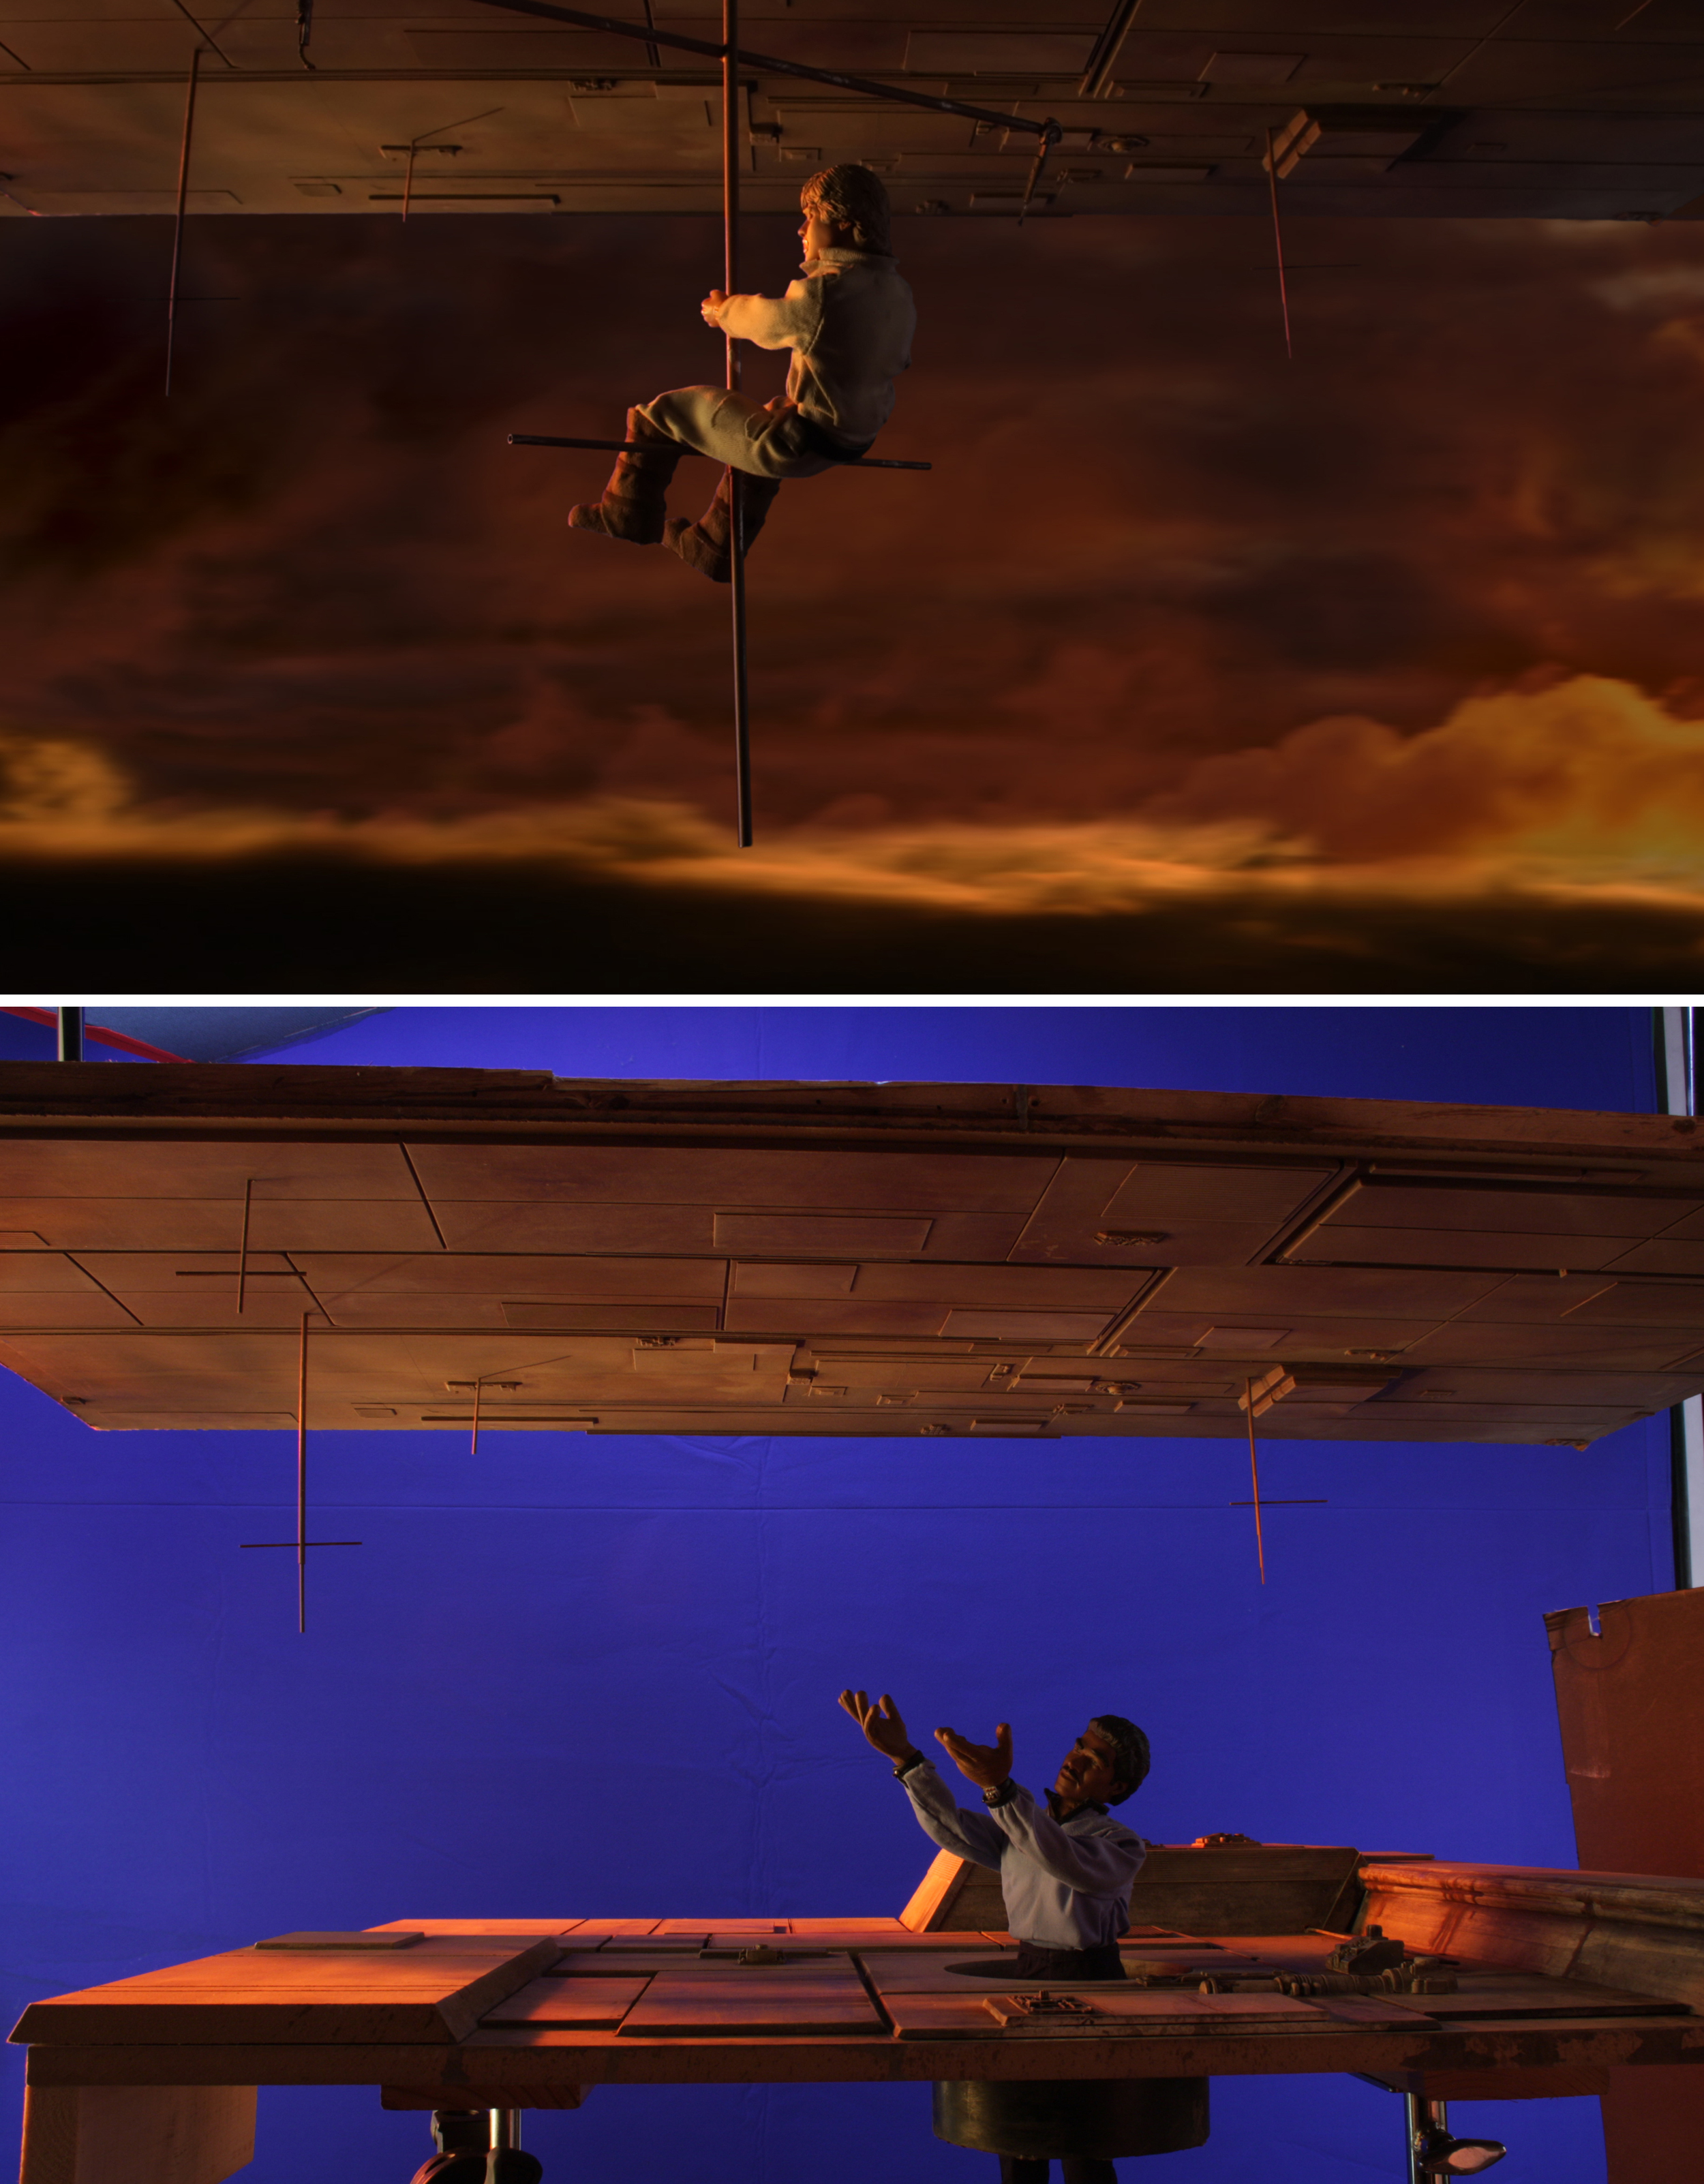 Robot Chicken Star Wars 3 Image 65.jpg